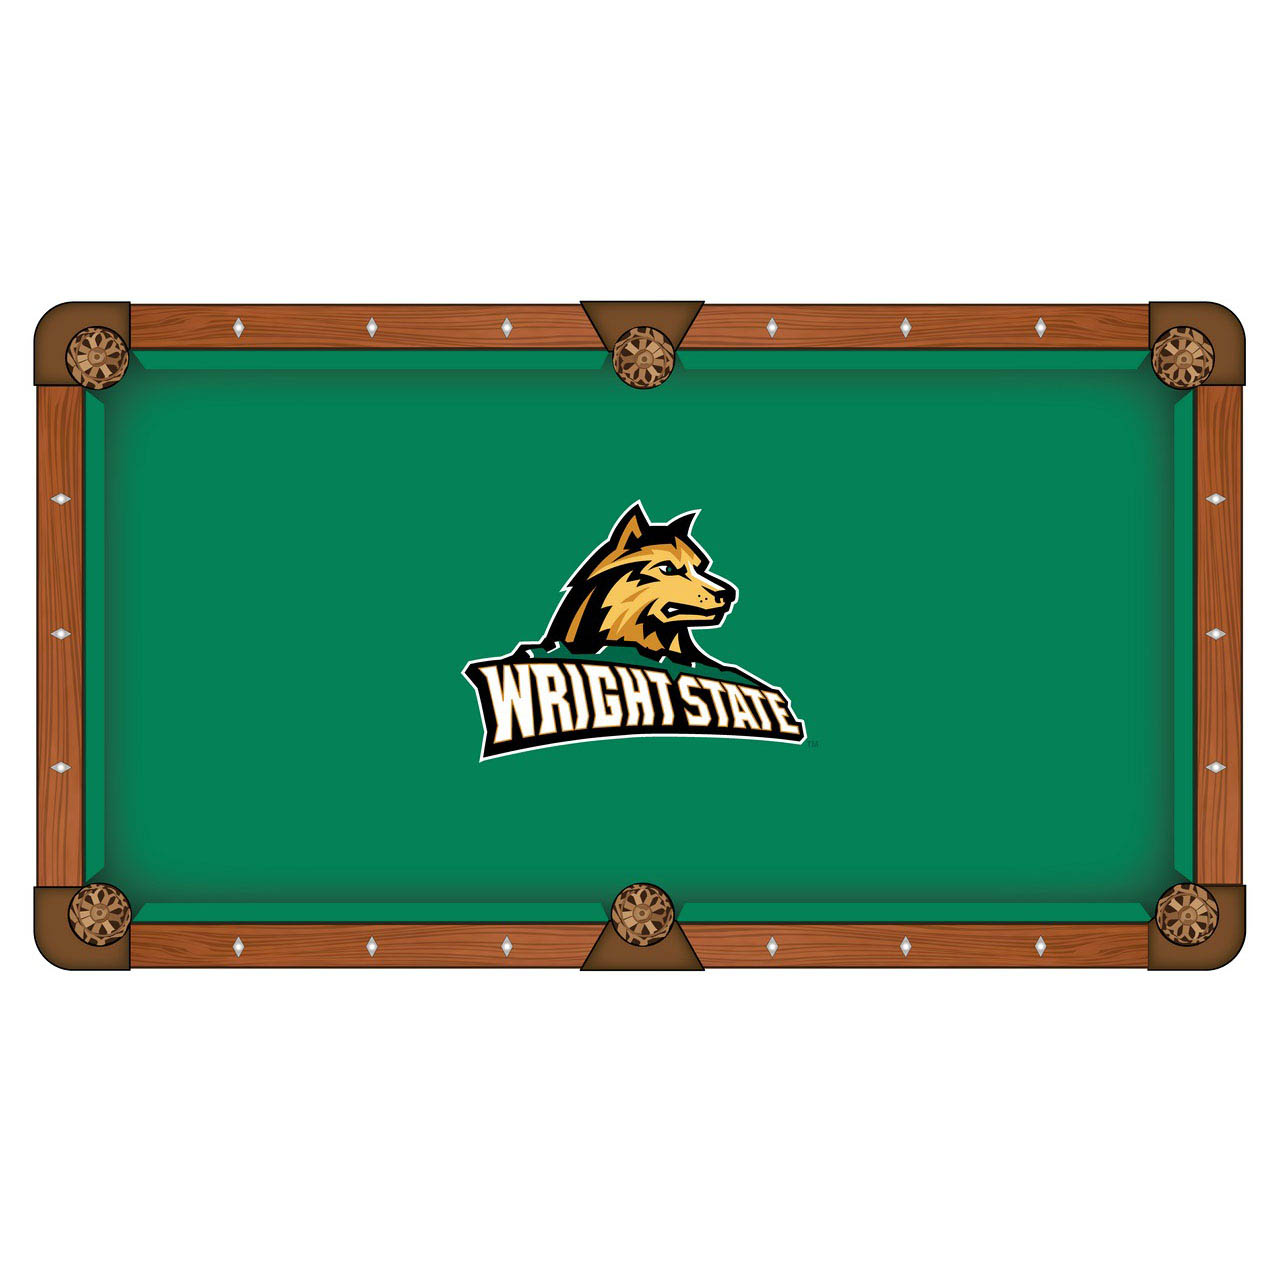 Ultimate Wright State University Pool Table Cloth Product Photo